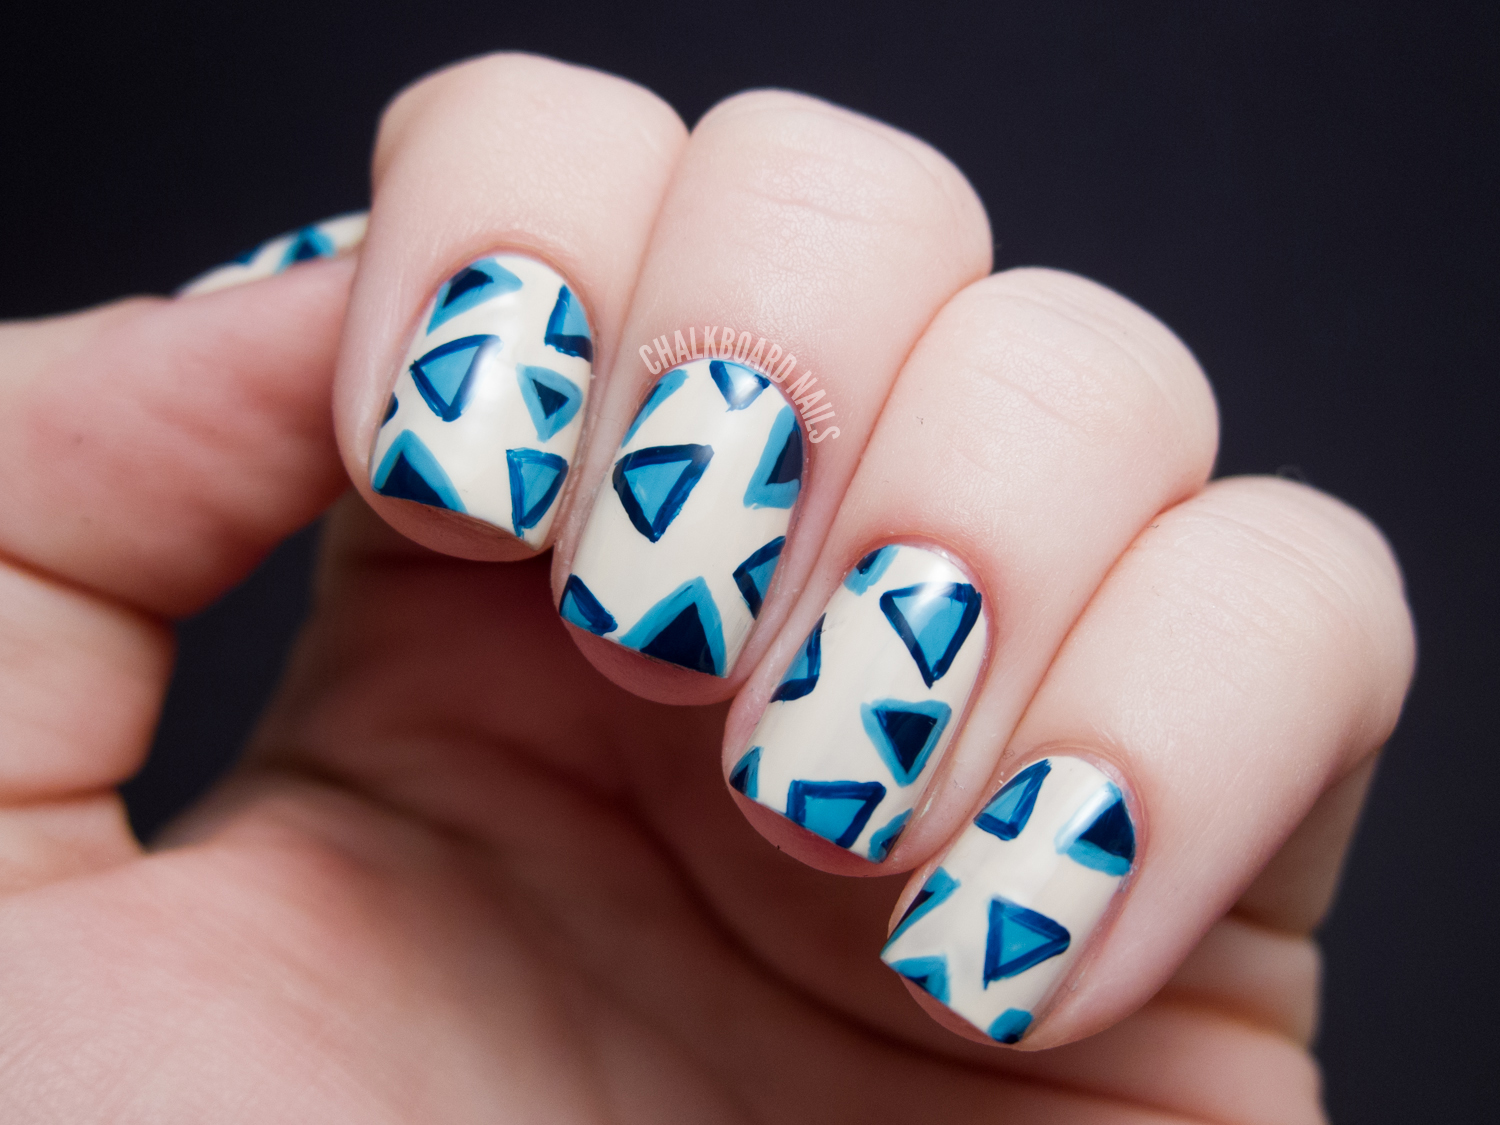 Inverted Triangles - OPI Euro Centrale Nail Art | Chalkboard Nails ...